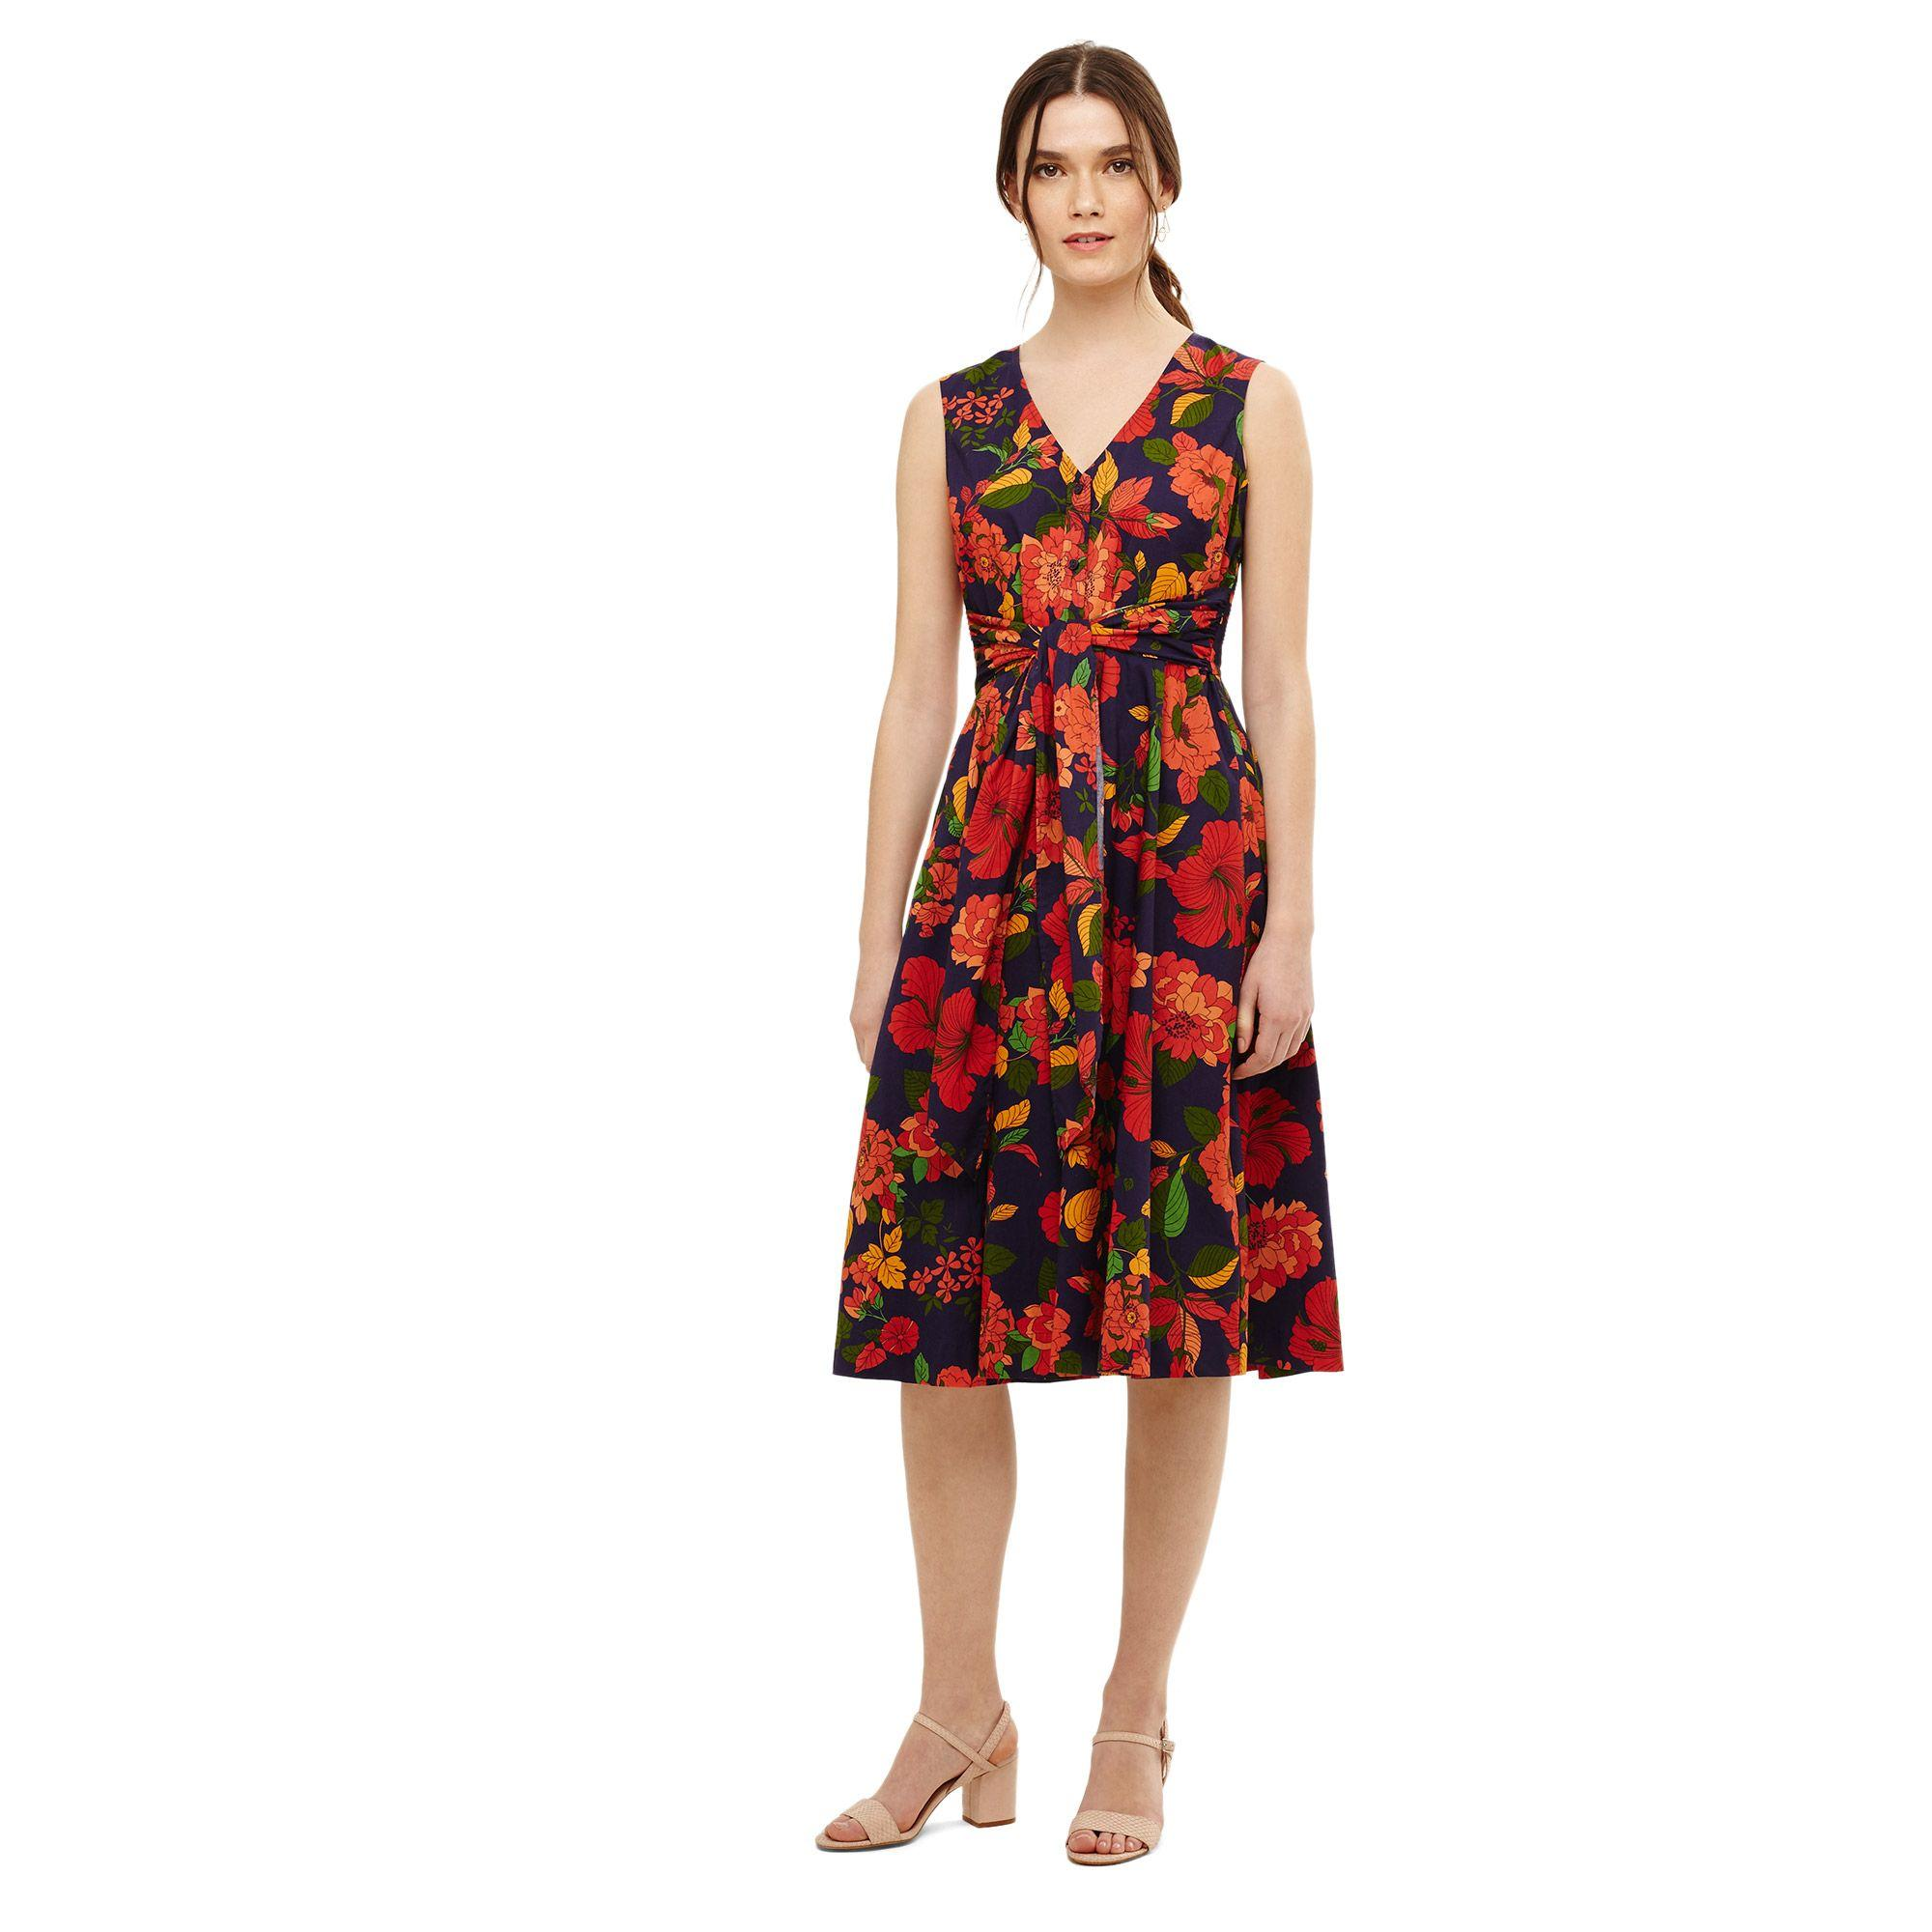 6f40aedd95 Phase Eight. Women s Blue Navy Multi-coloured Cilla Floral Fit And Flare  Dress